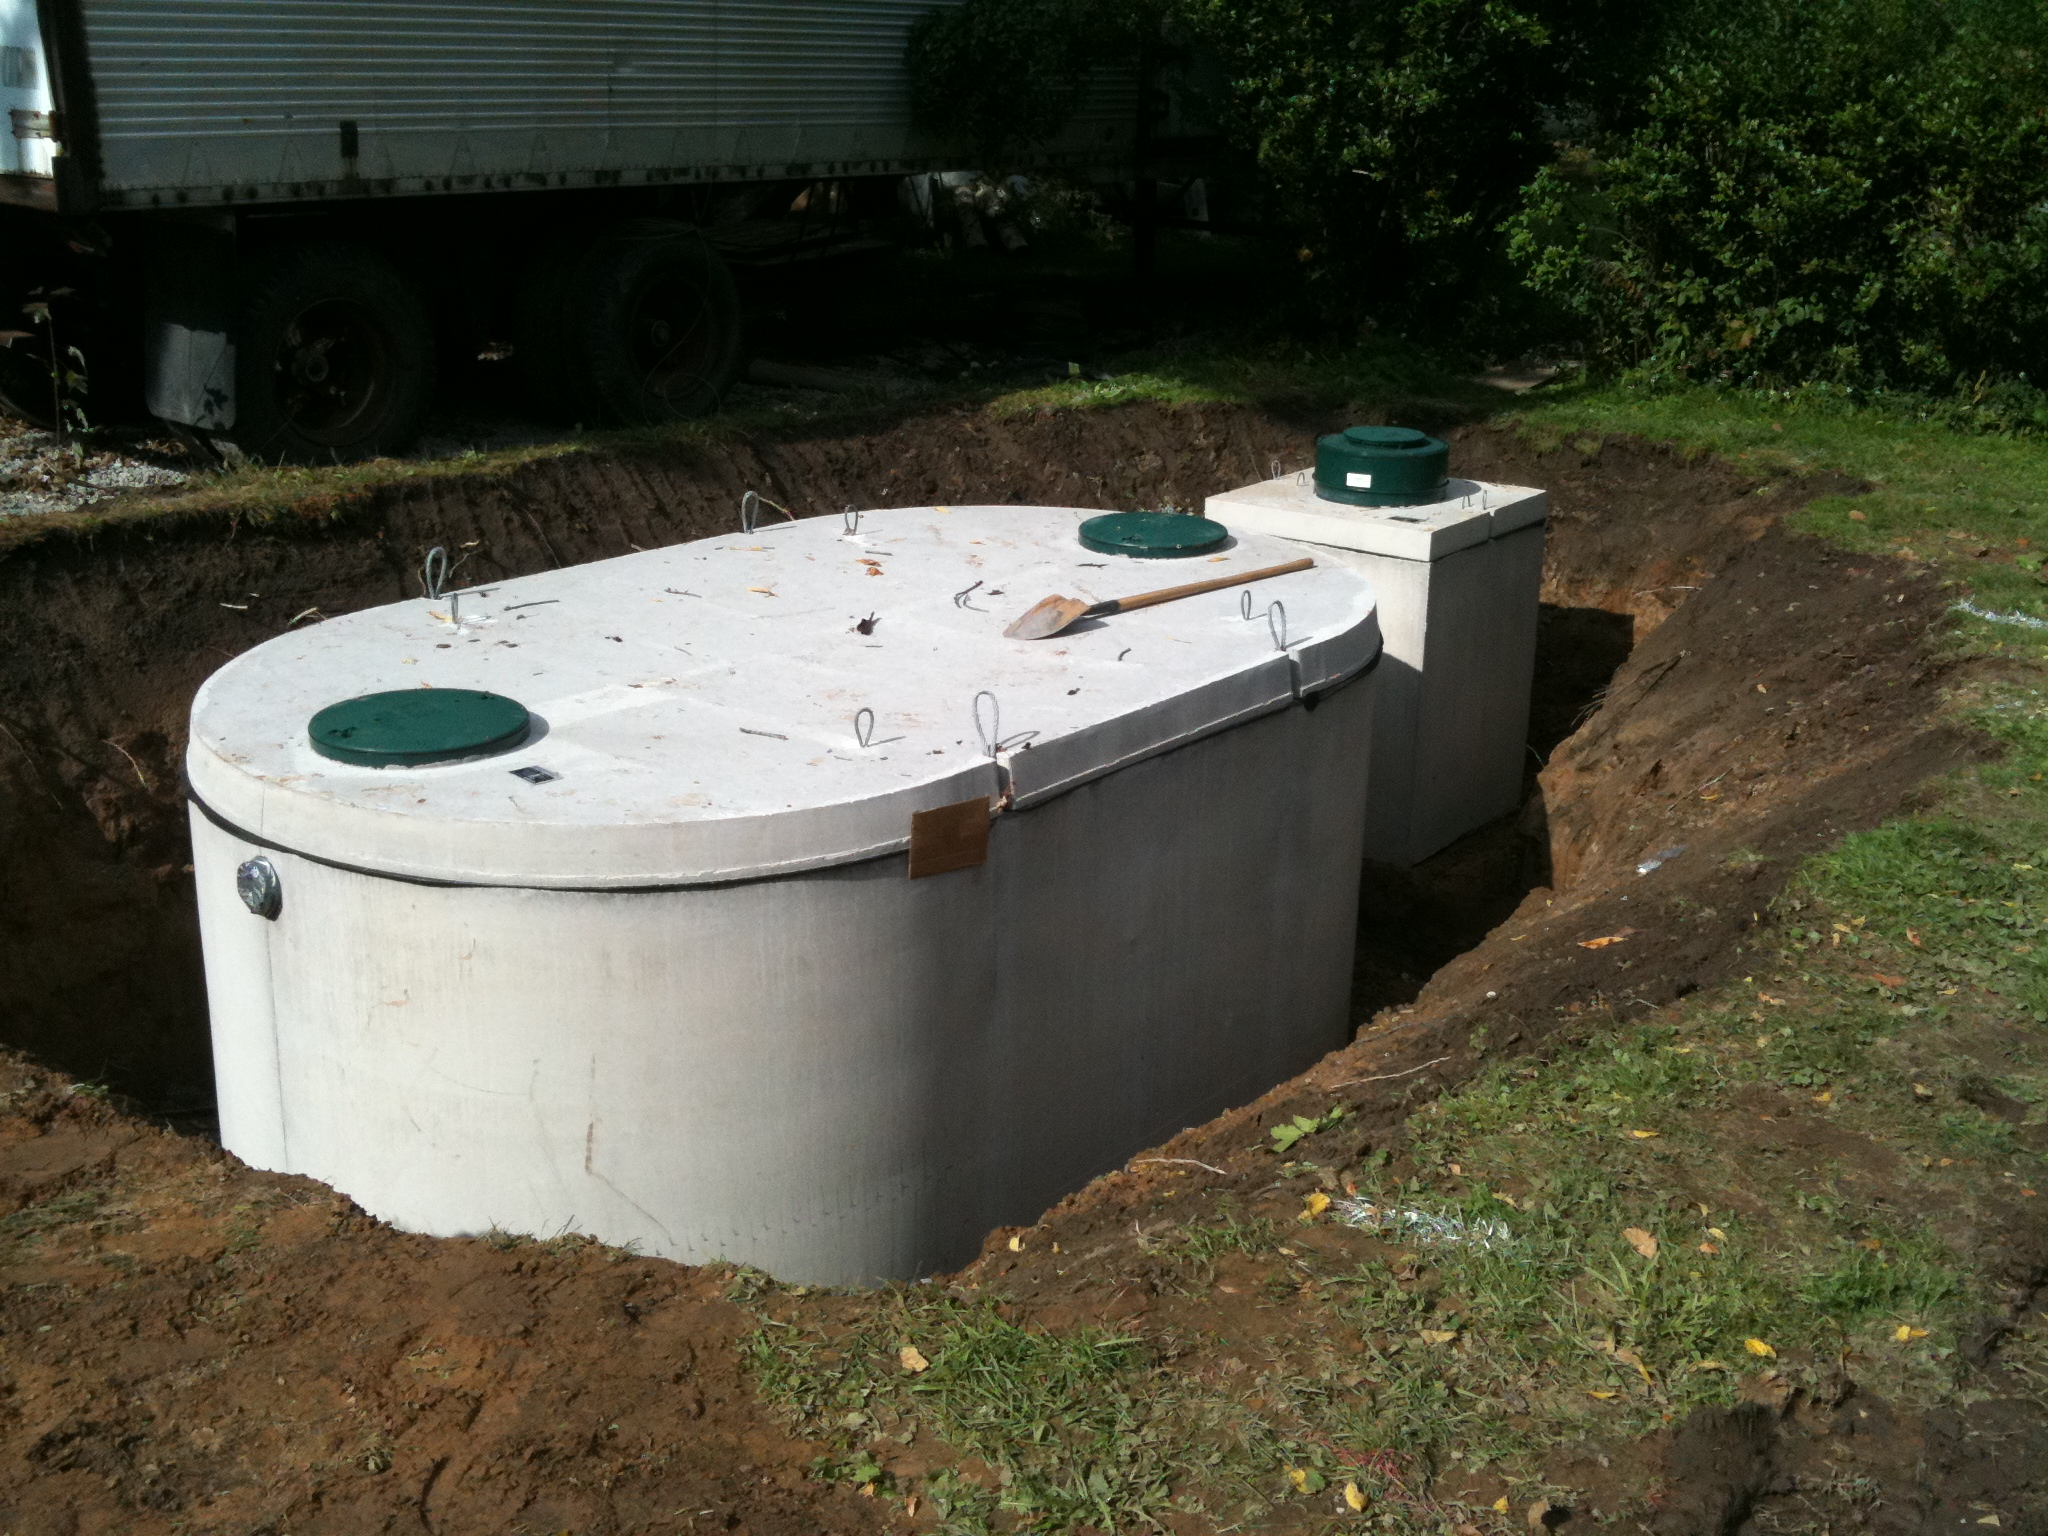 Home page for Septic tank fumes in house